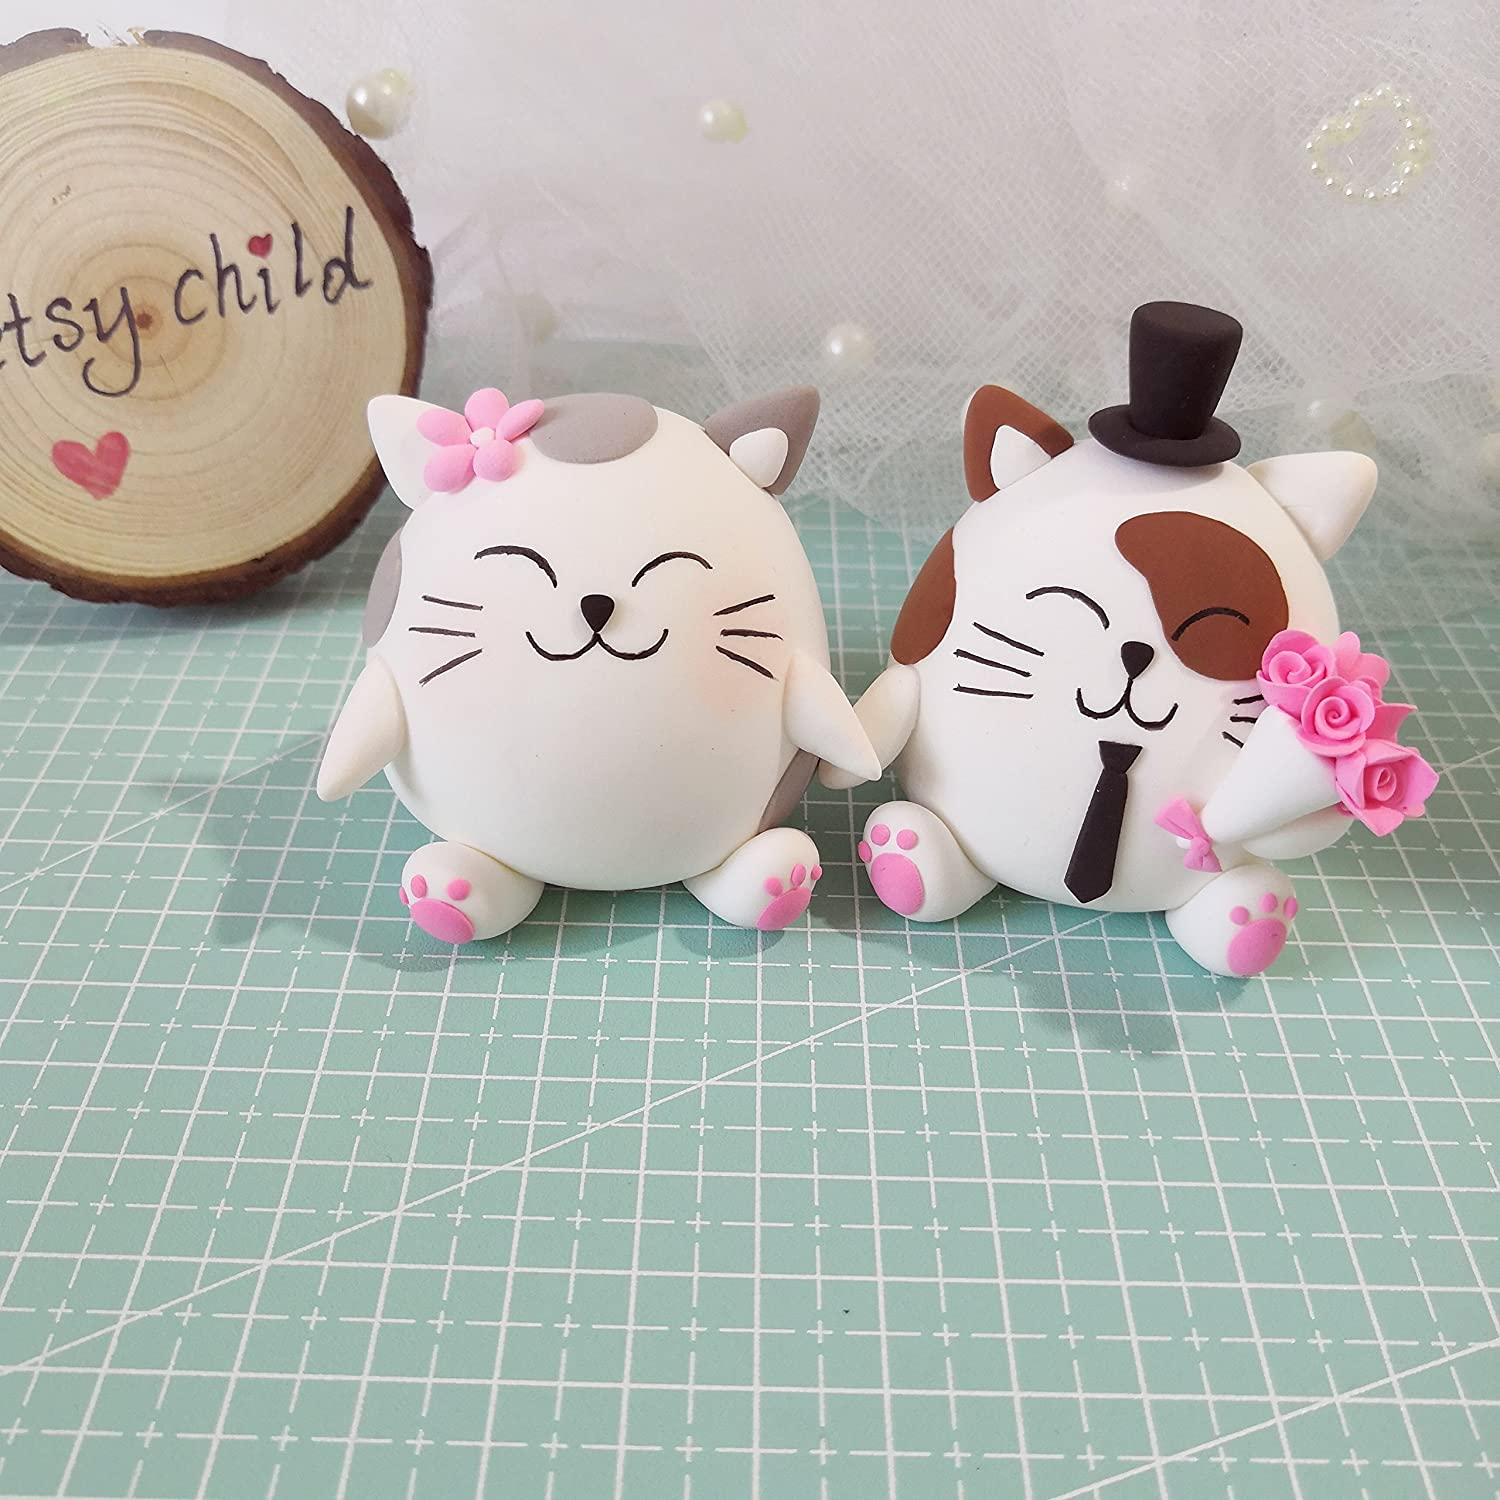 Cat Wedding cake toppers - Cute funny animal wedding topper clay figurine, engagement decoration